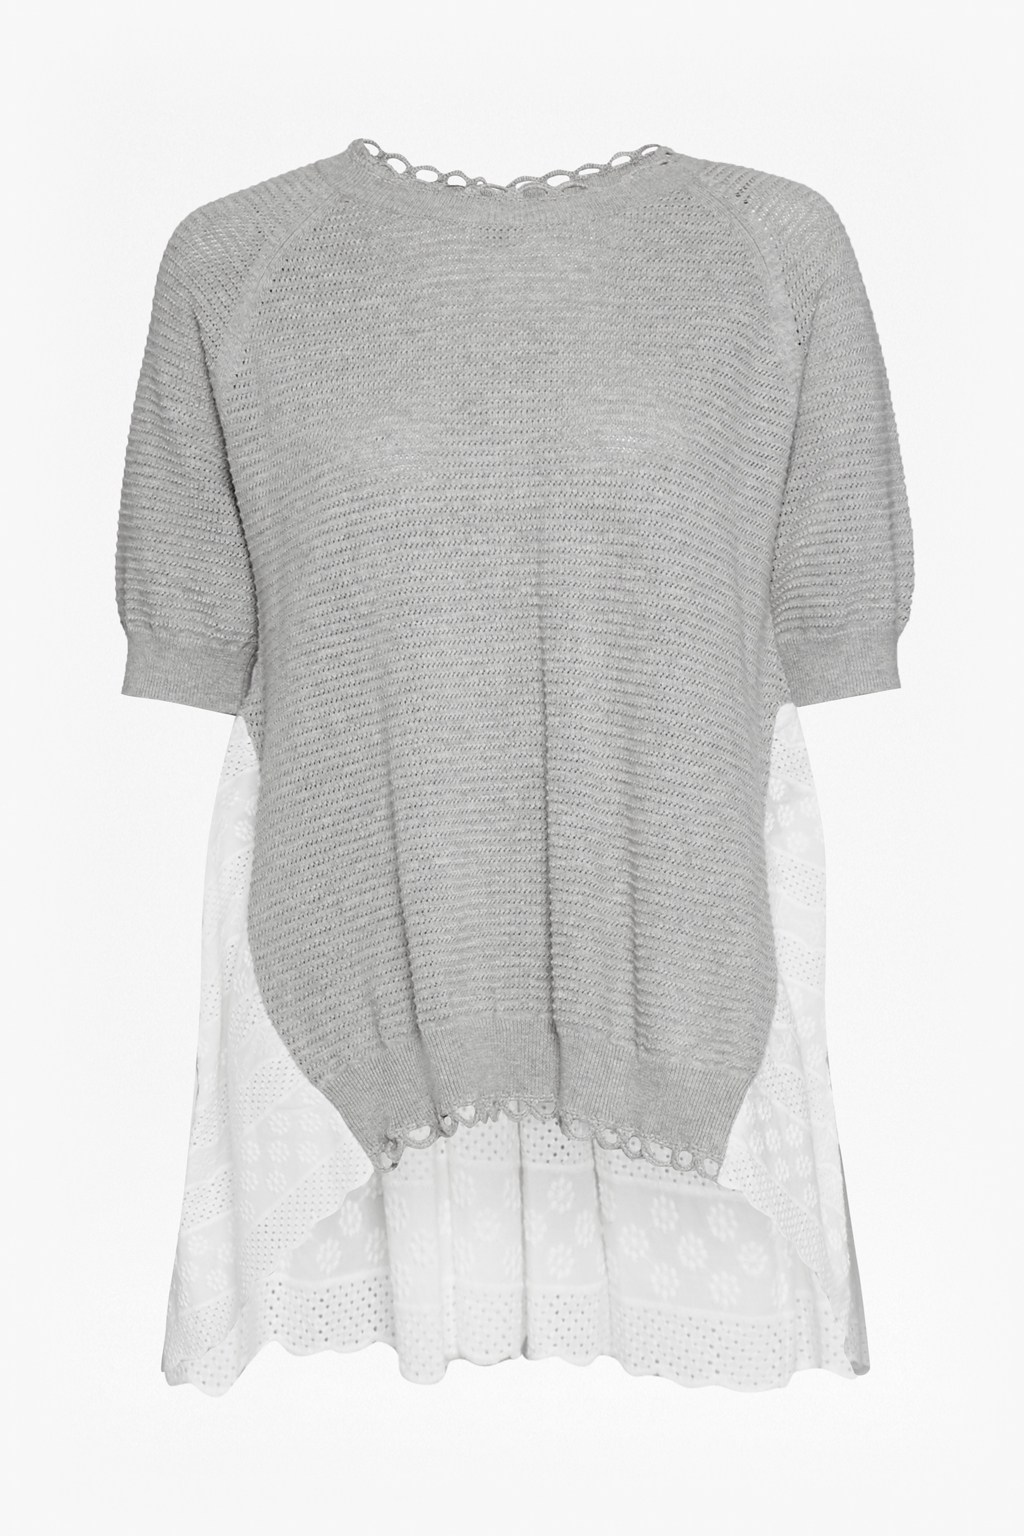 66bb6cd0f2c740 Womens Cotton Knitted Sweater